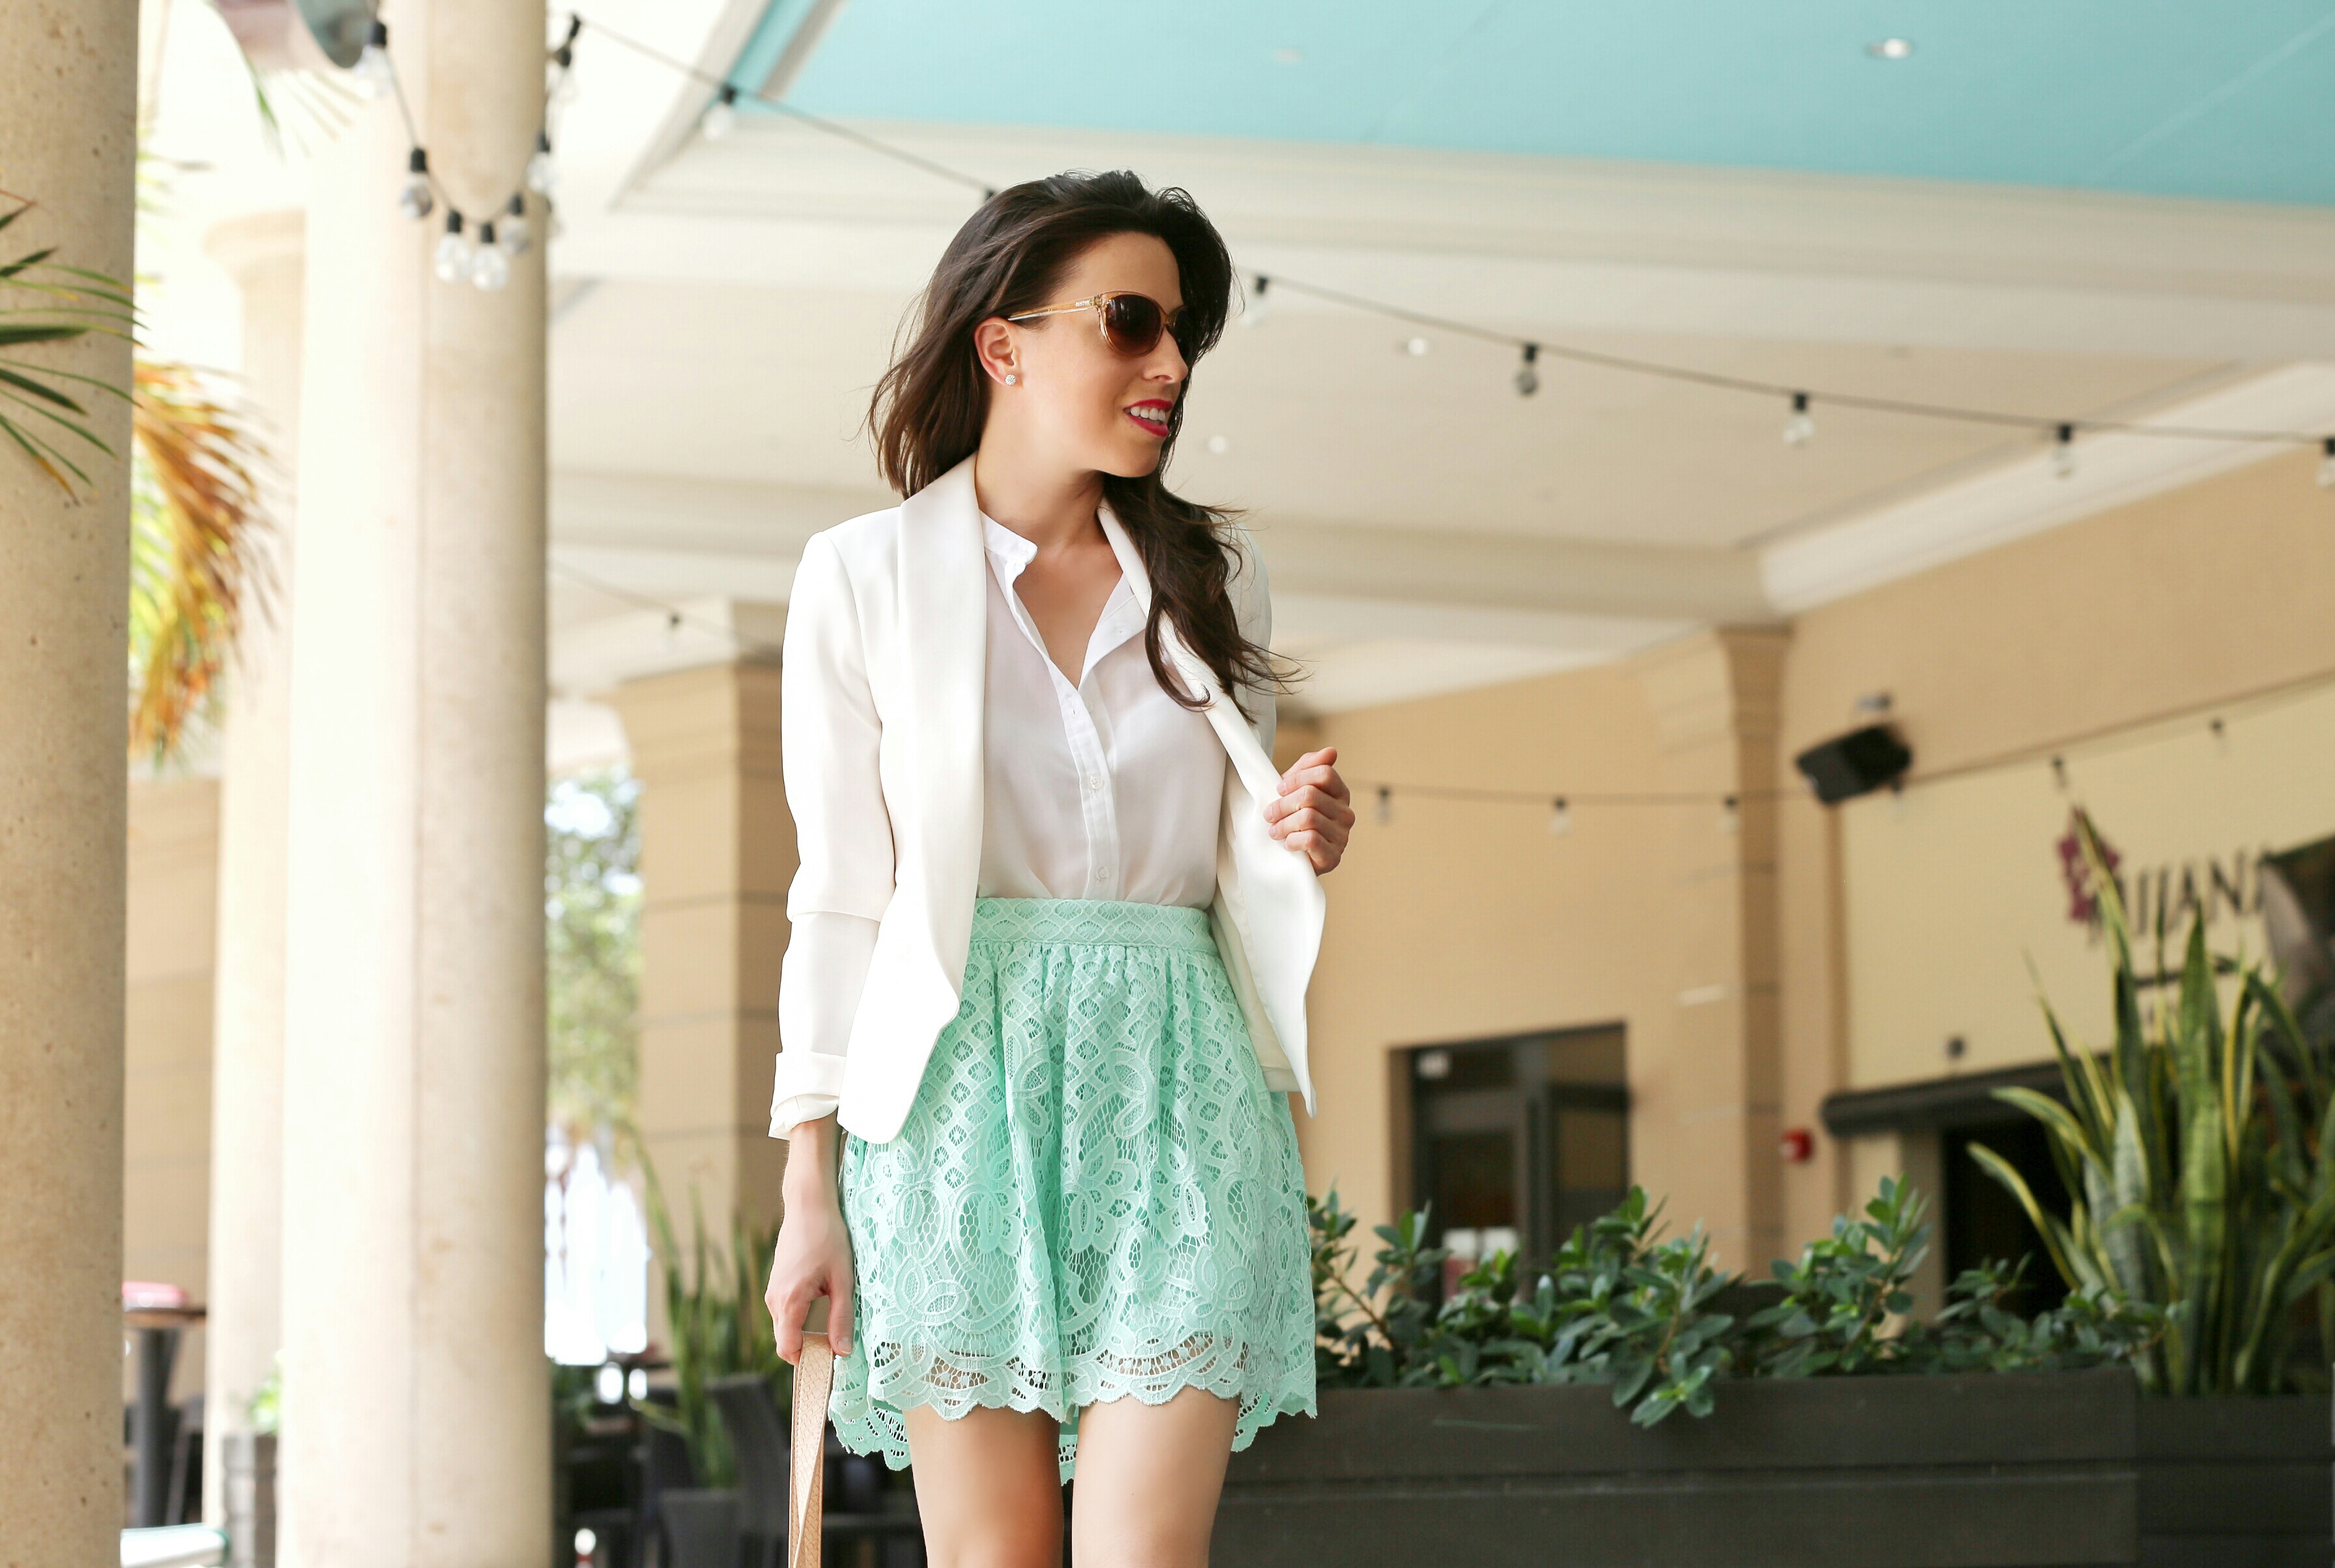 Look of the Day: White & Mint Skirt